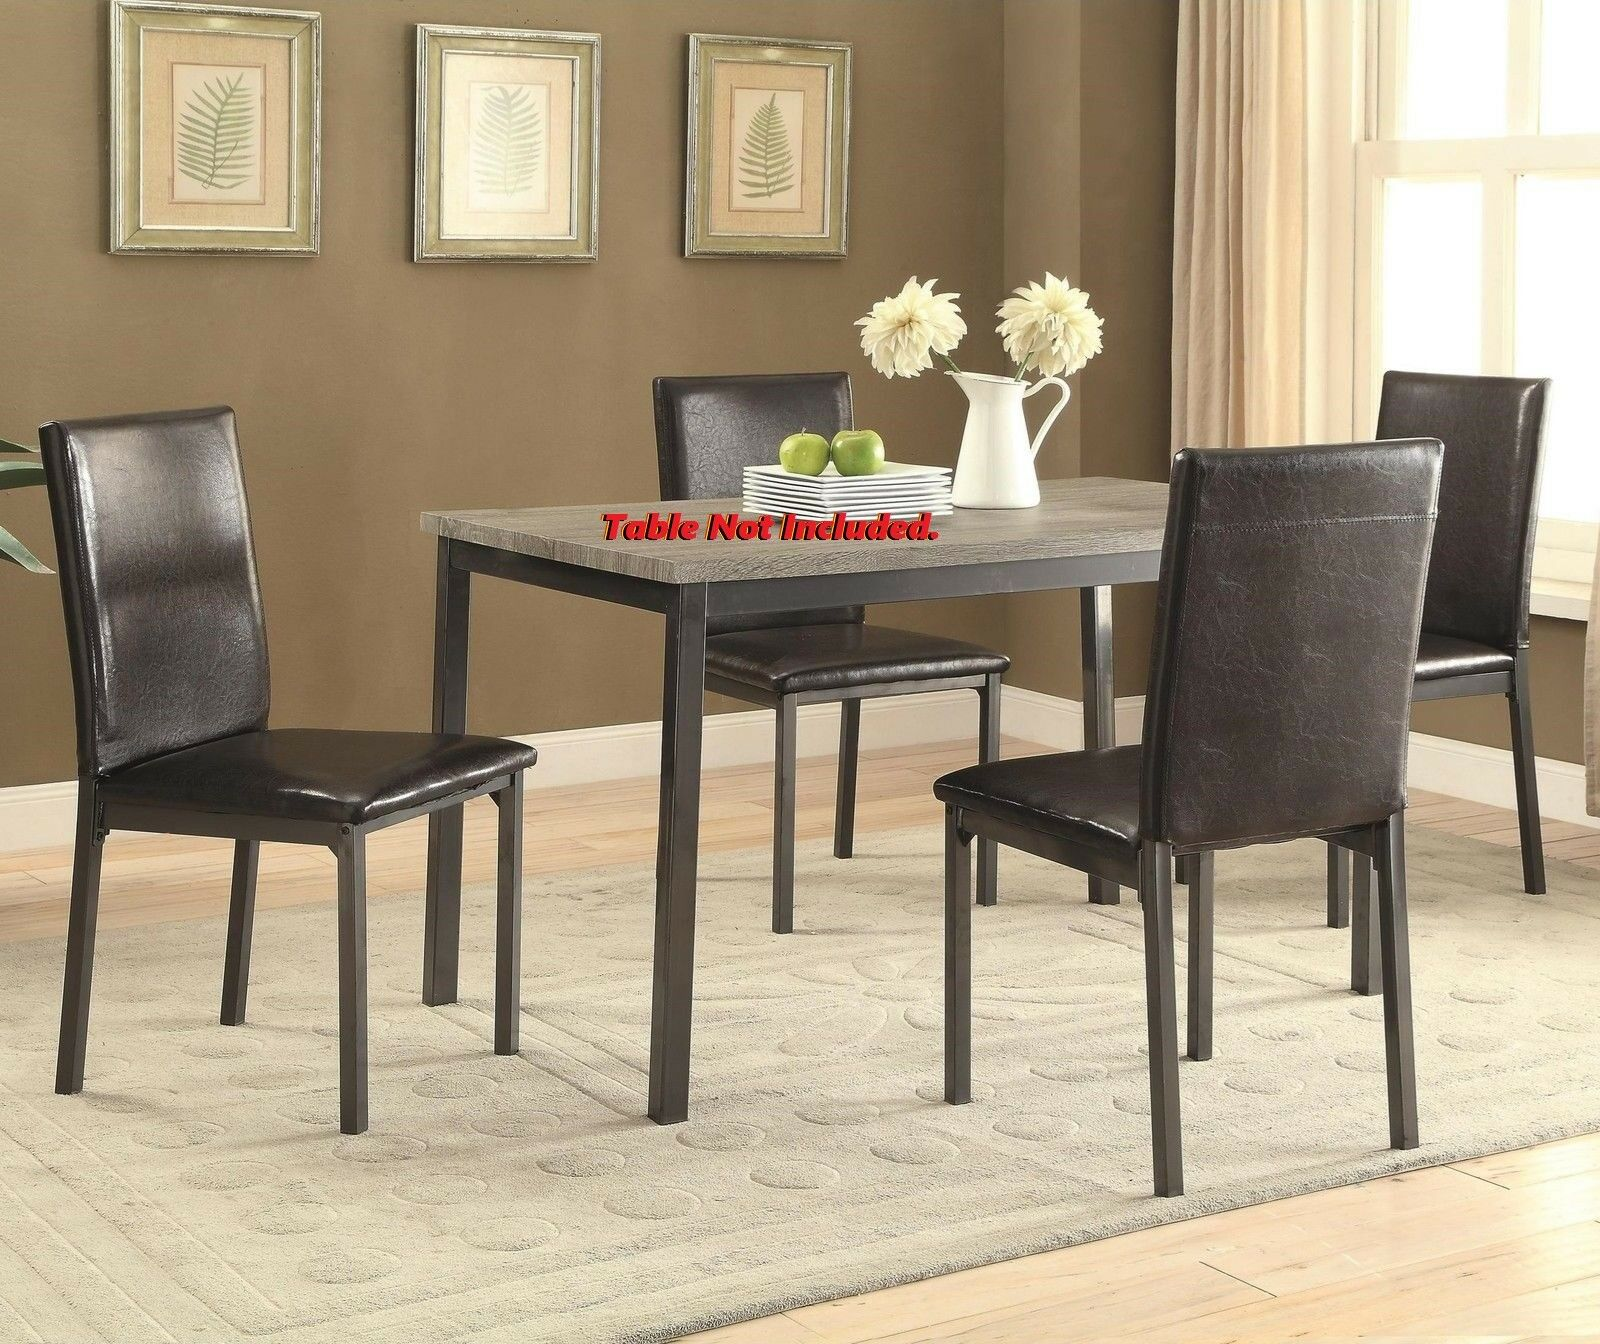 6pc Dining Chairs Coaster 100612 Dining Room Black Leatherette Chairs Metal Base For Sale Online